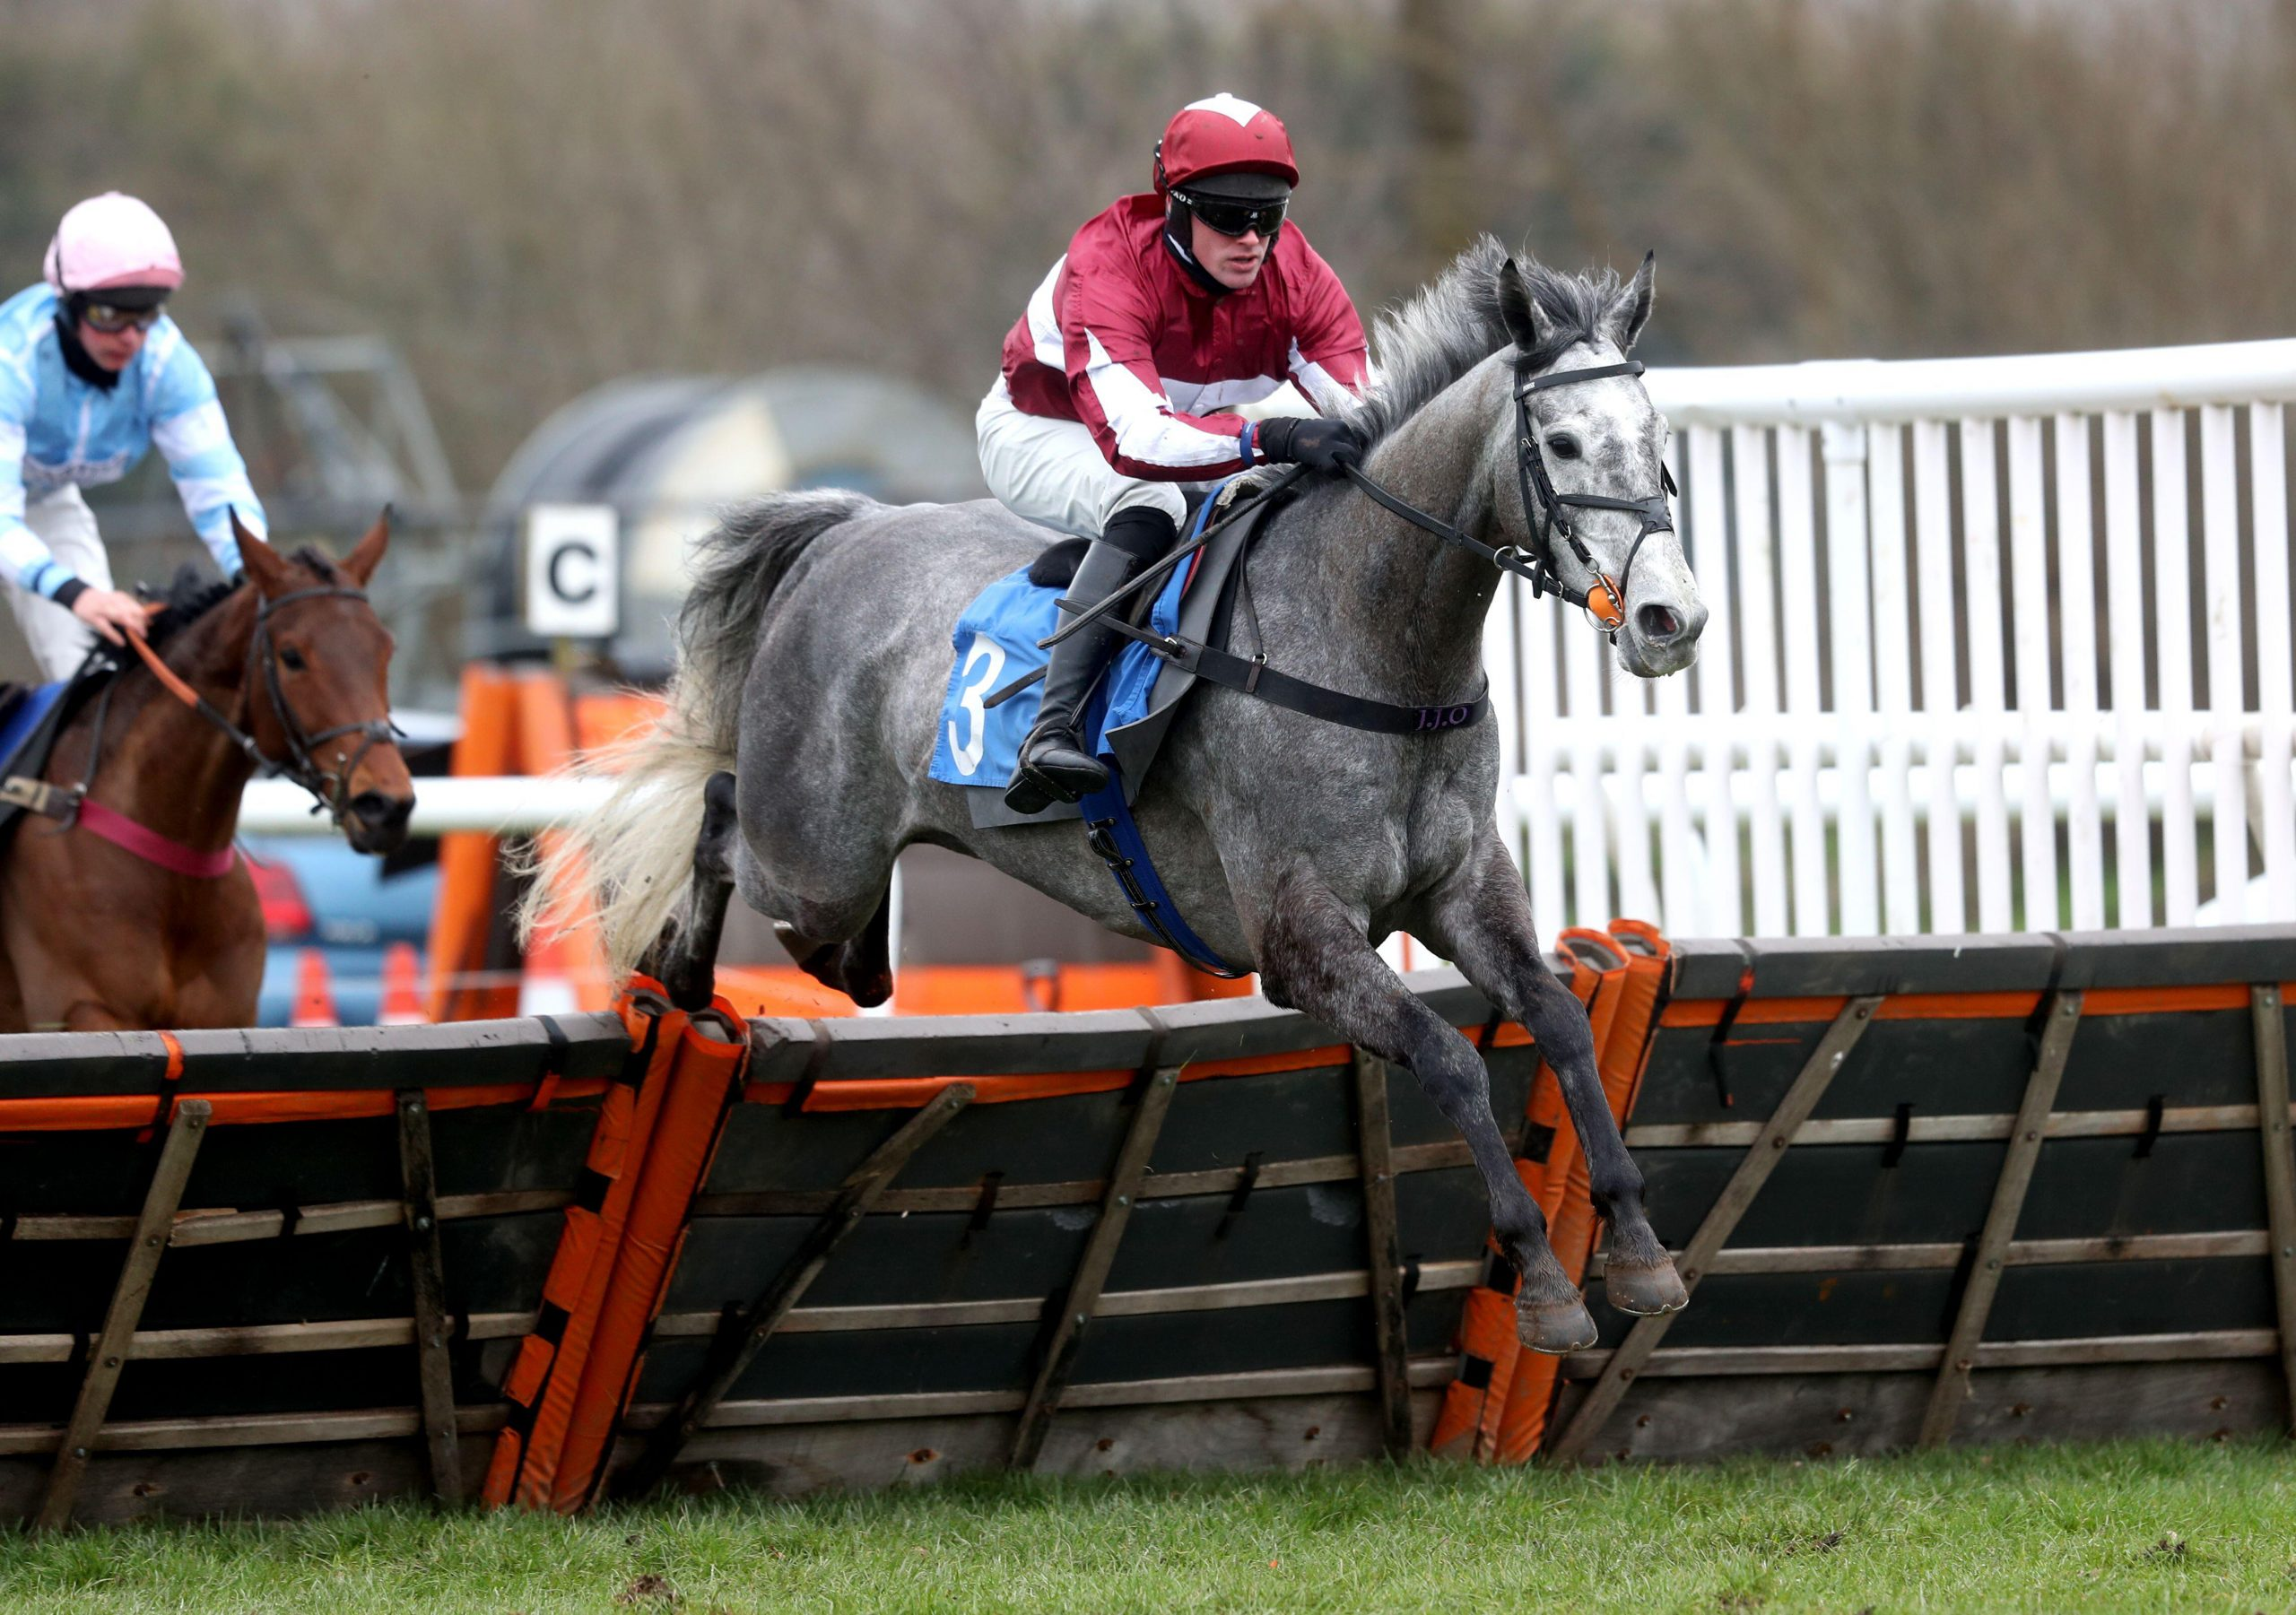 2EX733G An Tailliur ridden by Richie McLernon clears a fence whilst competing in the David Groom Sound Novices' Hurdle at Ludlow Racecourse. Picture date: Thursday March 4, 2021.